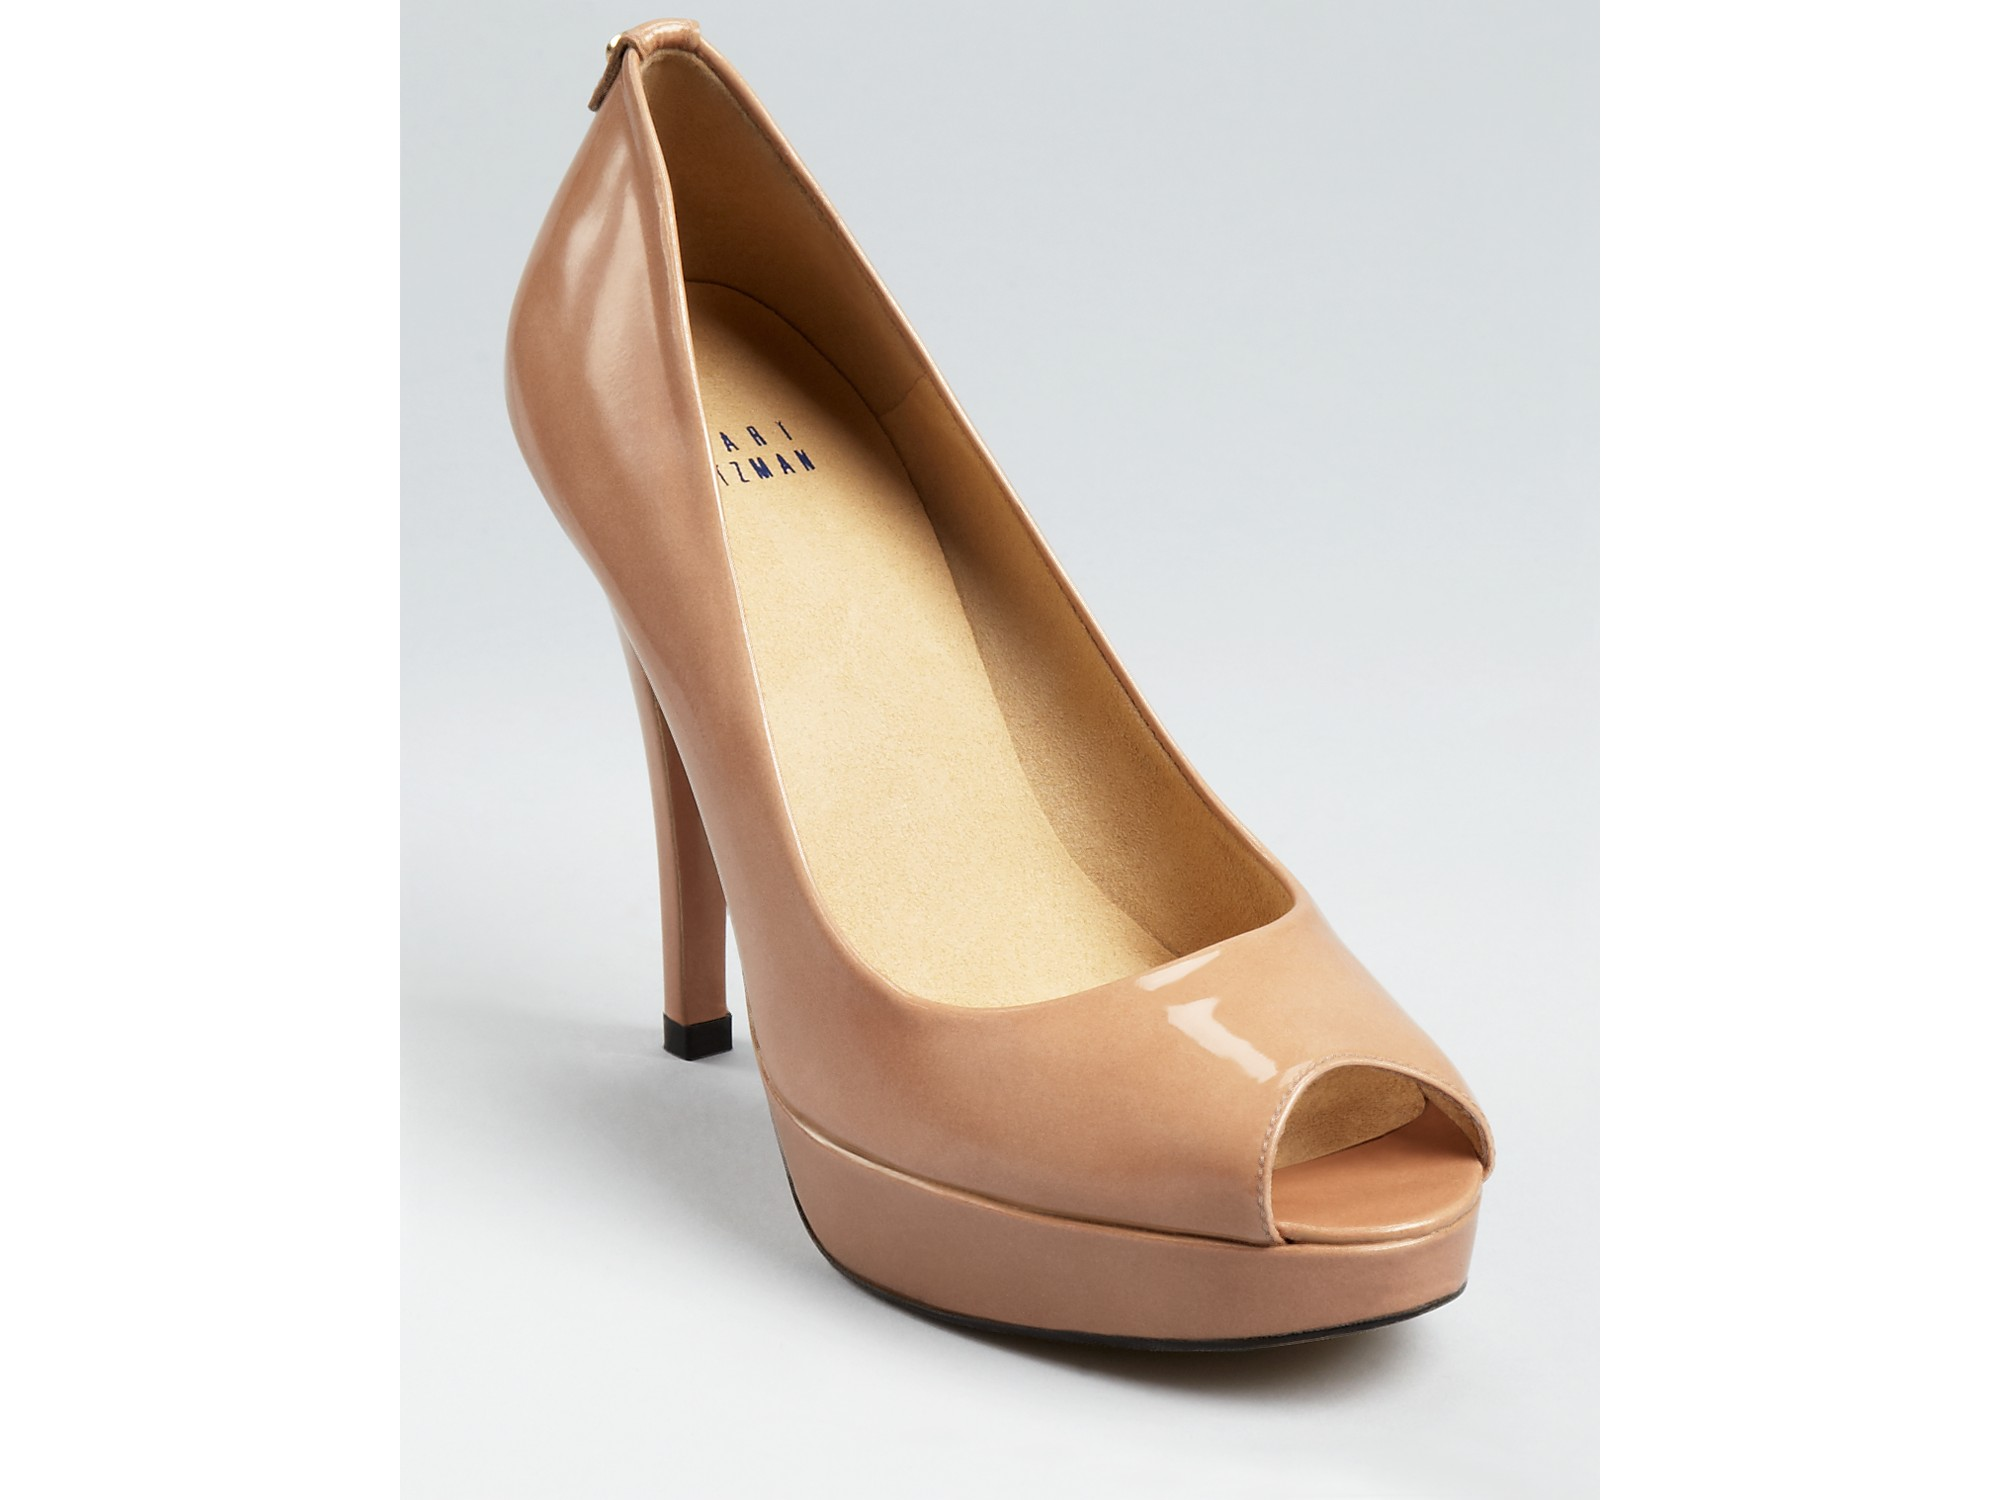 reliable cheap price Stuart Weitzman Suede Semi Pointed-Toe Pumps buy cheap great deals NrlPUgEr